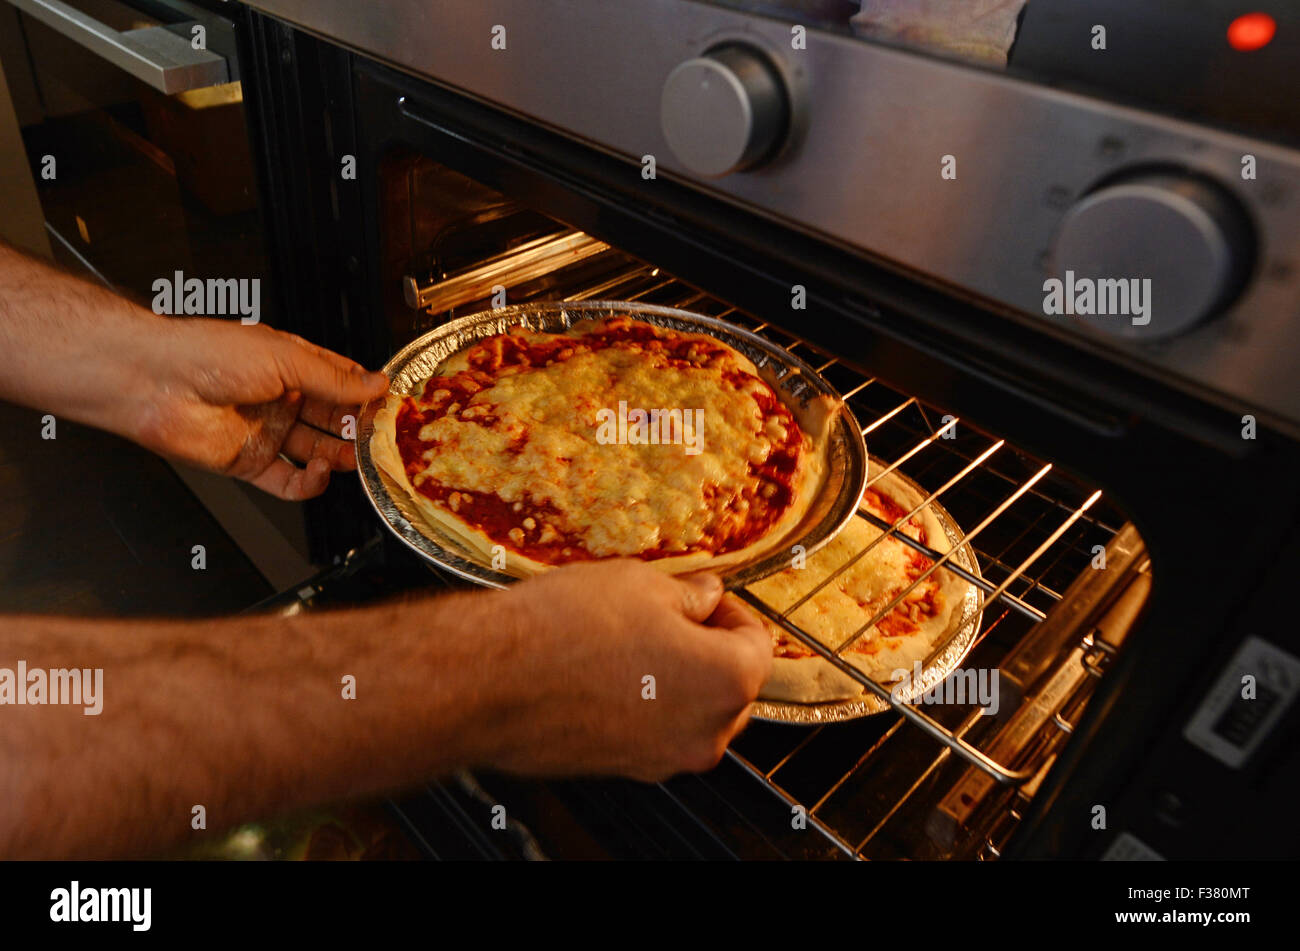 Man hands getting out from the oven a ready homemade pizza. - Stock Image